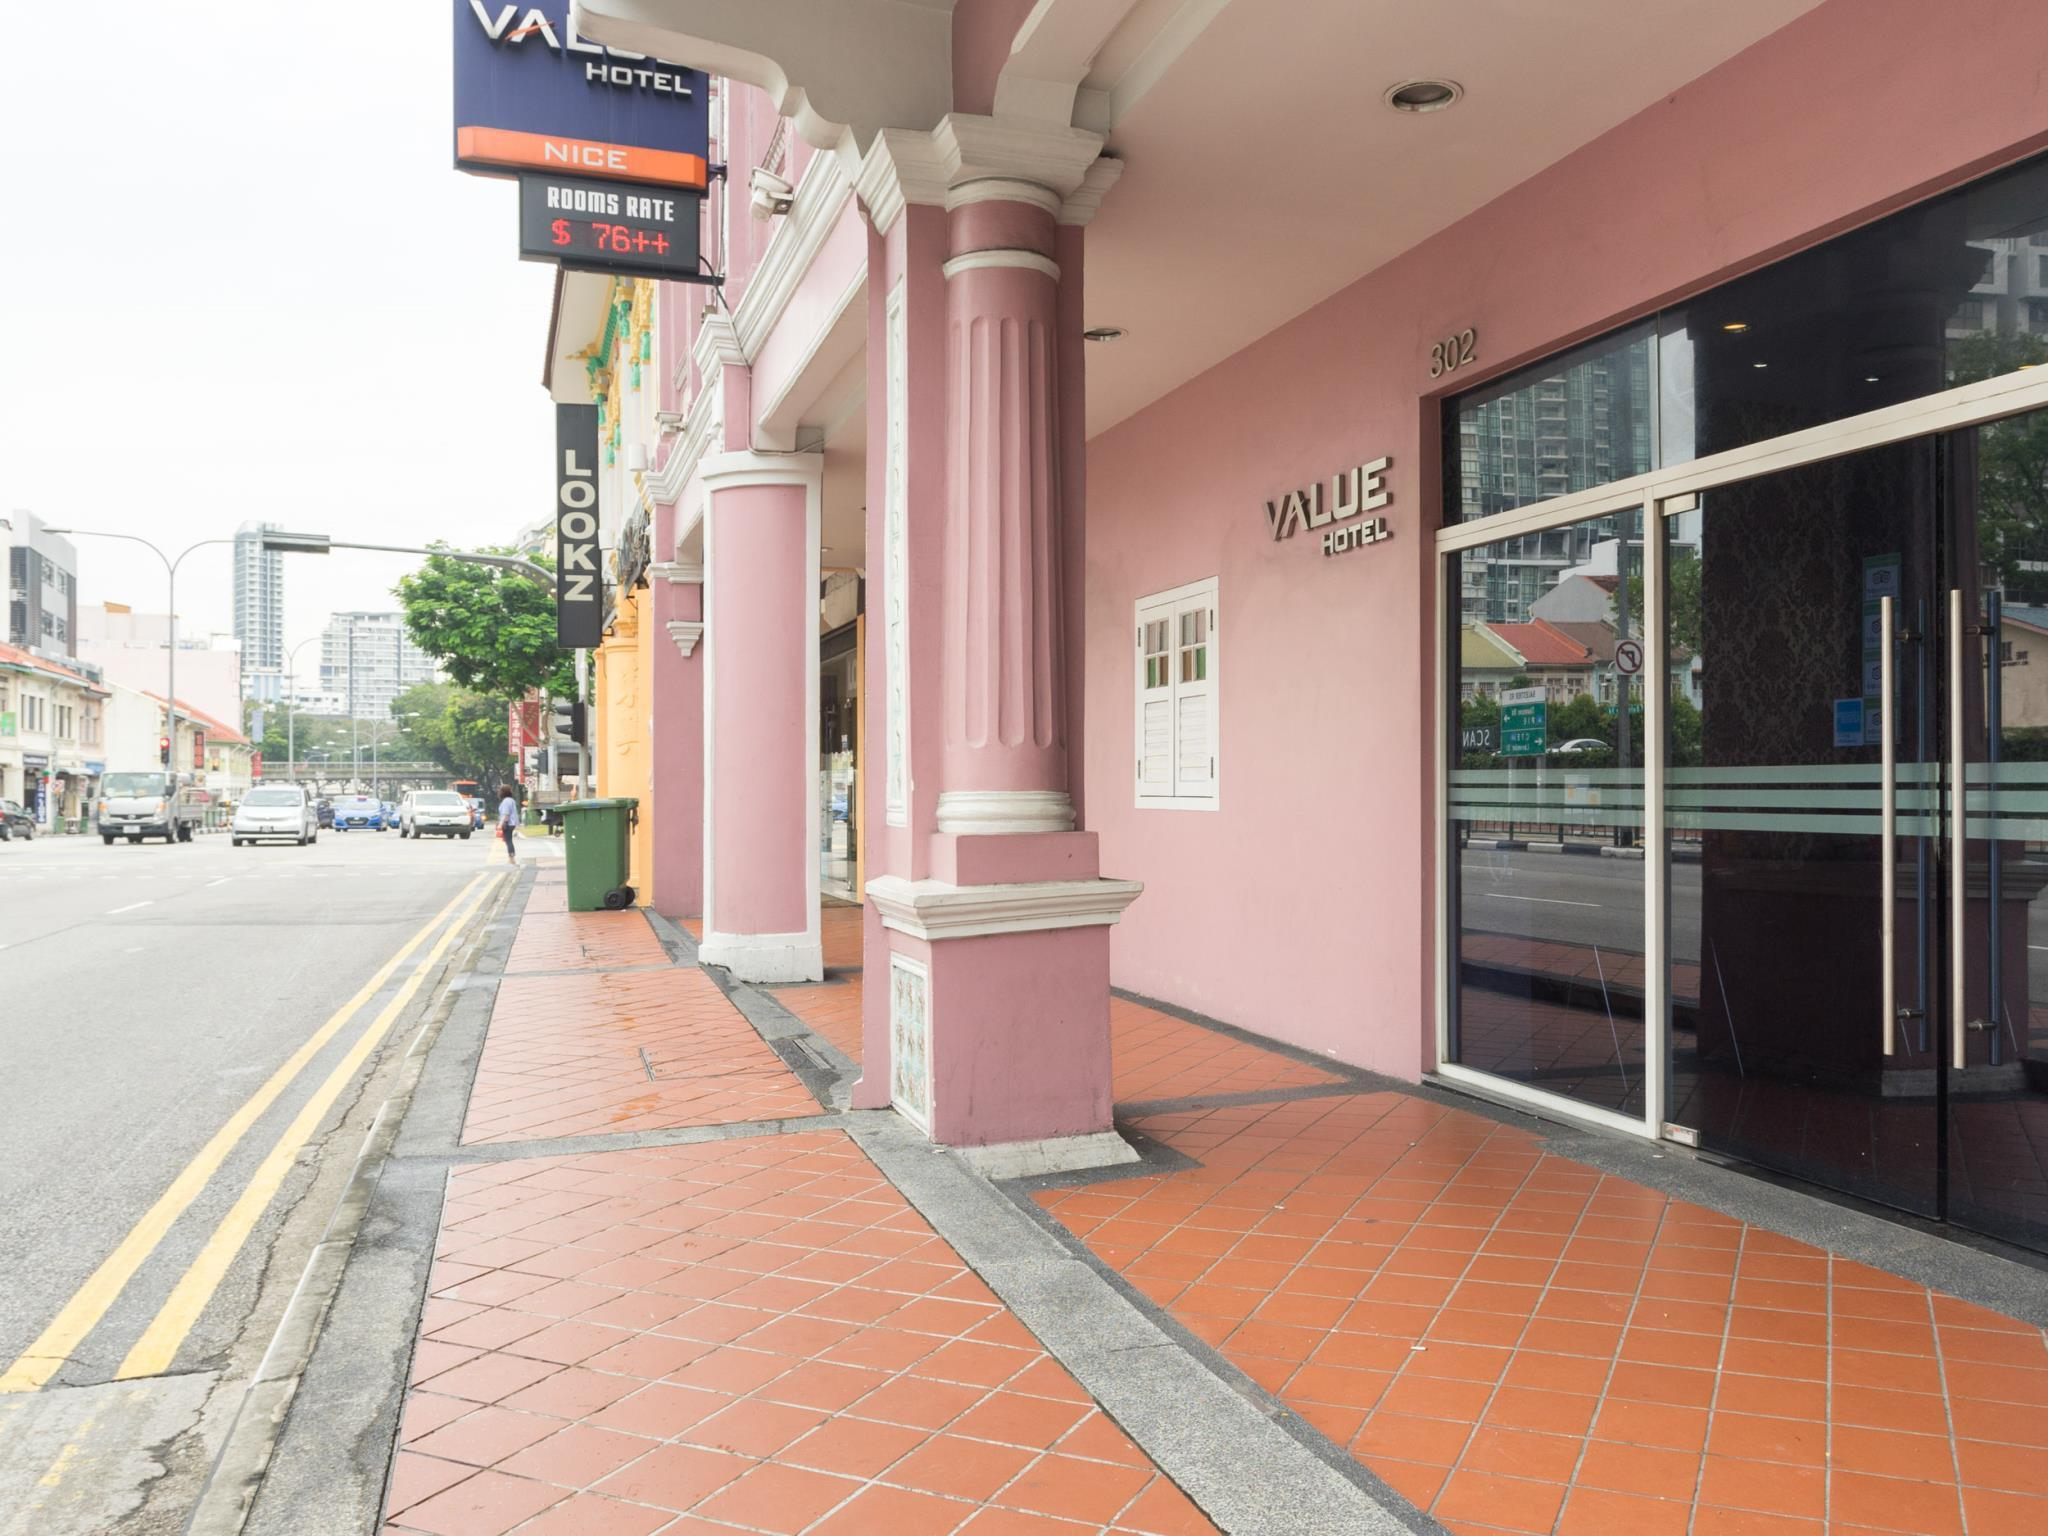 Value Hotel Nice (SG Clean Certified)